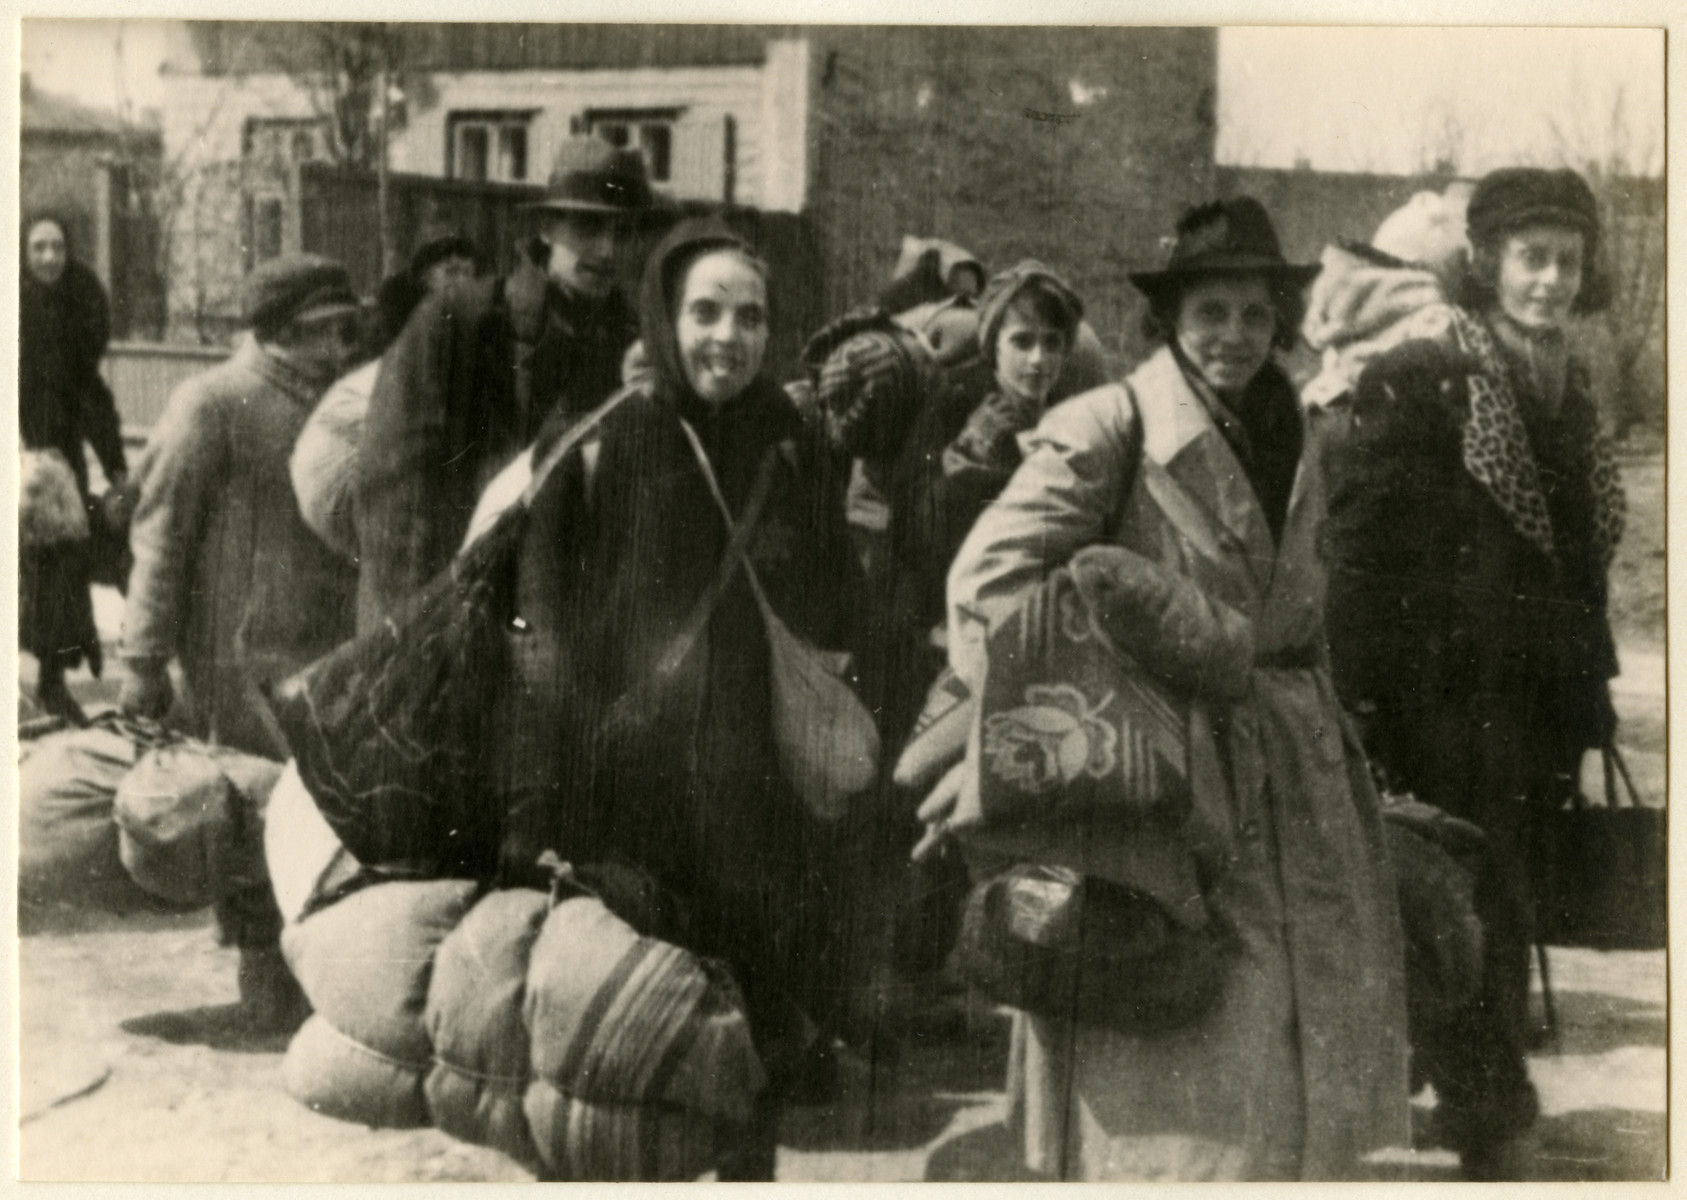 A group of women carrying large bundles march to an assembly point during a deportation action in the Lodz ghetto.